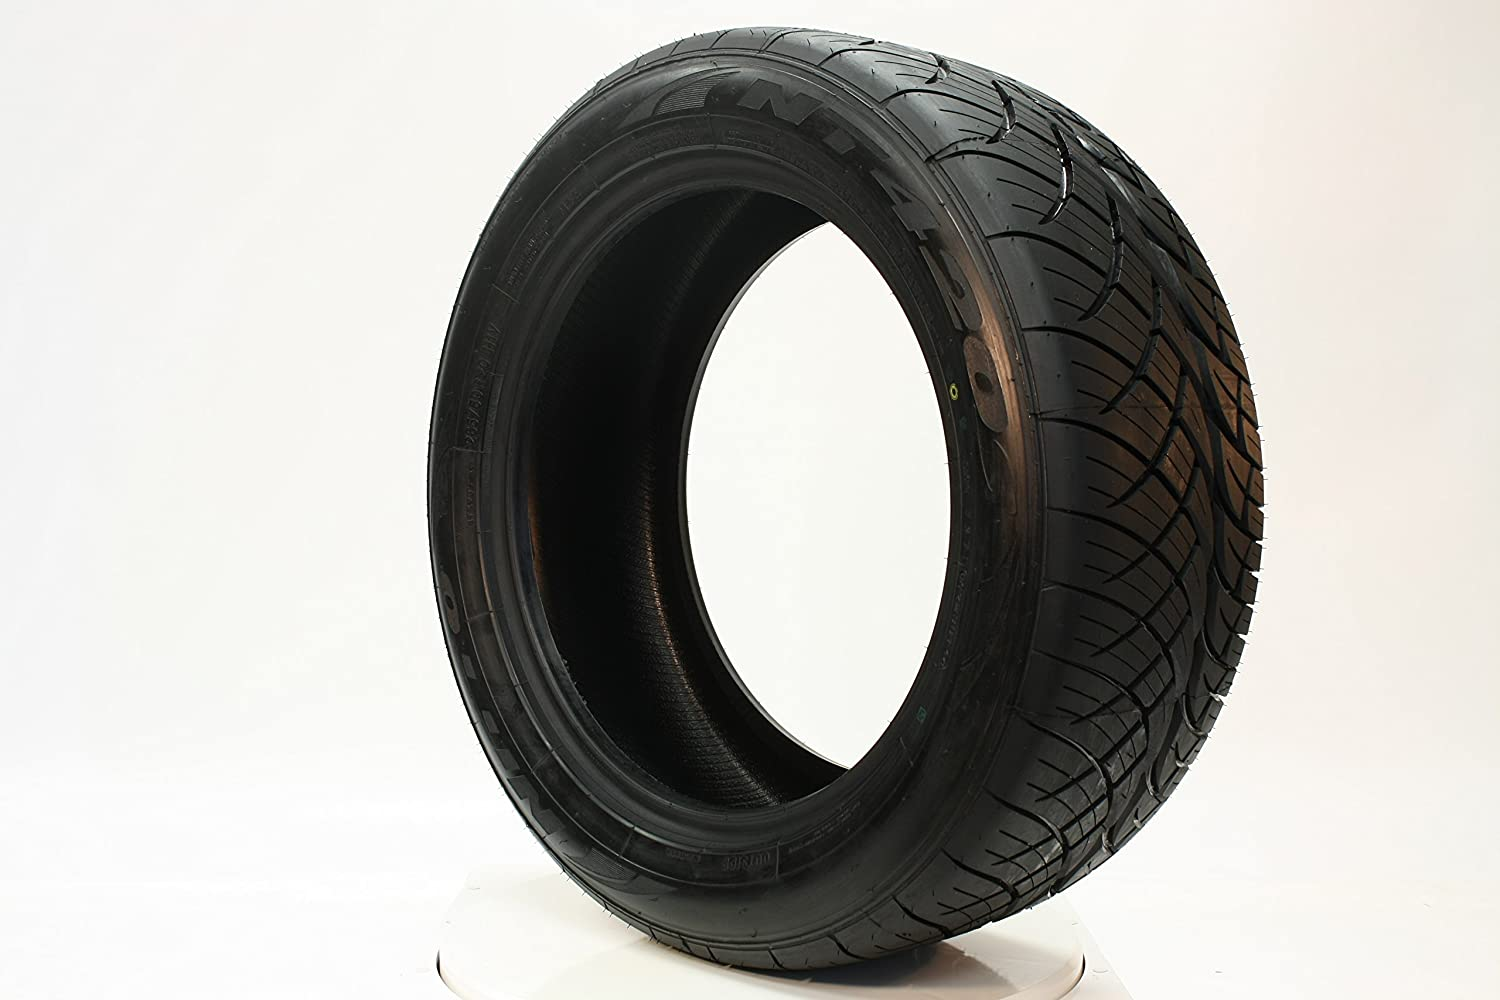 3. Nitto NT420S All-Season Radial Tire